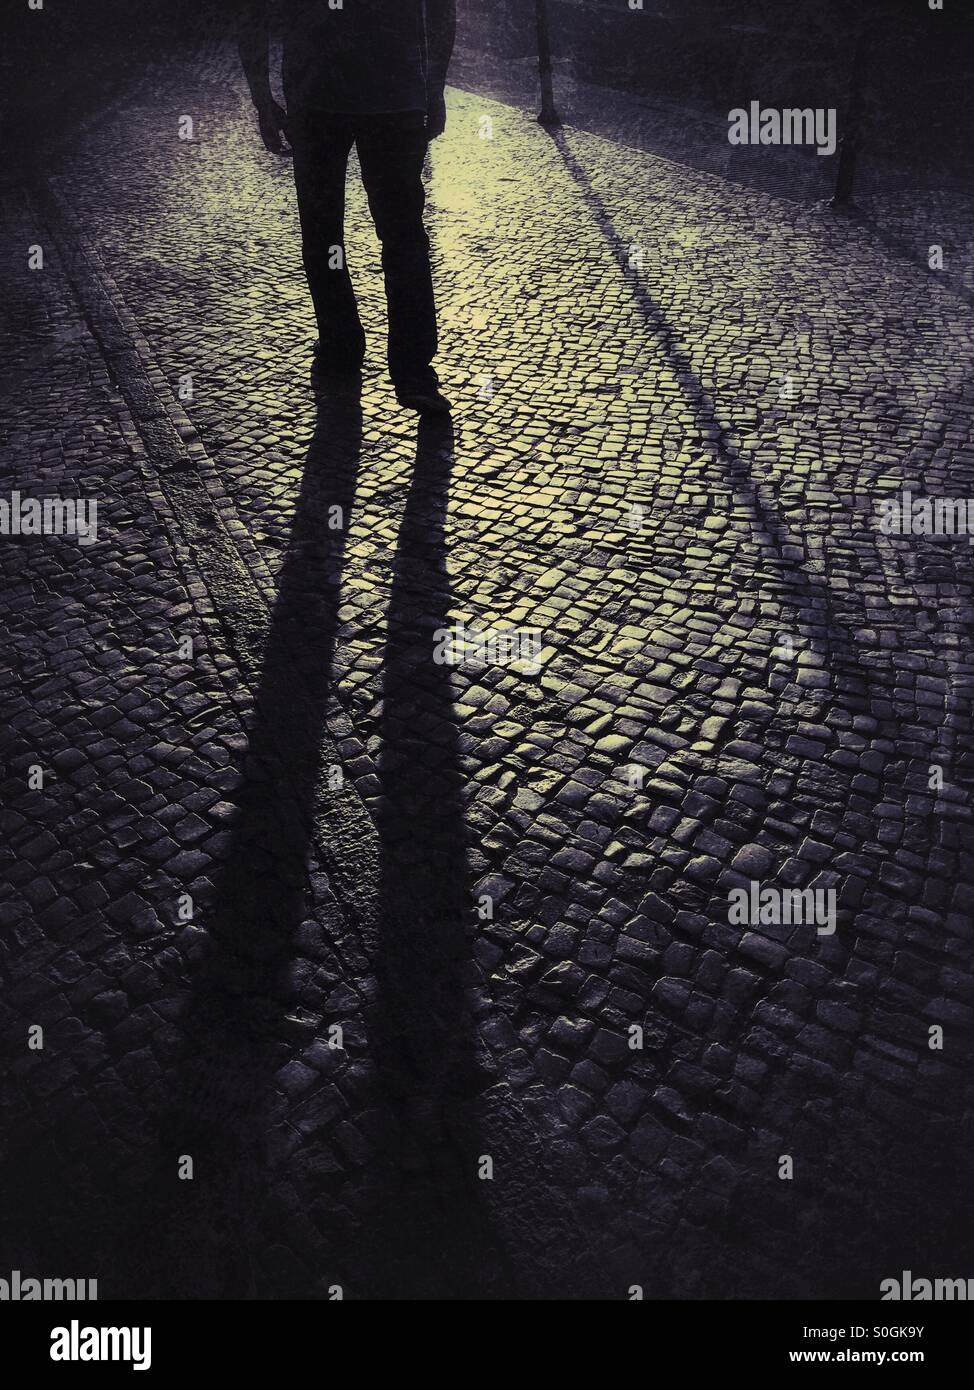 Shadowy male figure in the street - Stock Image